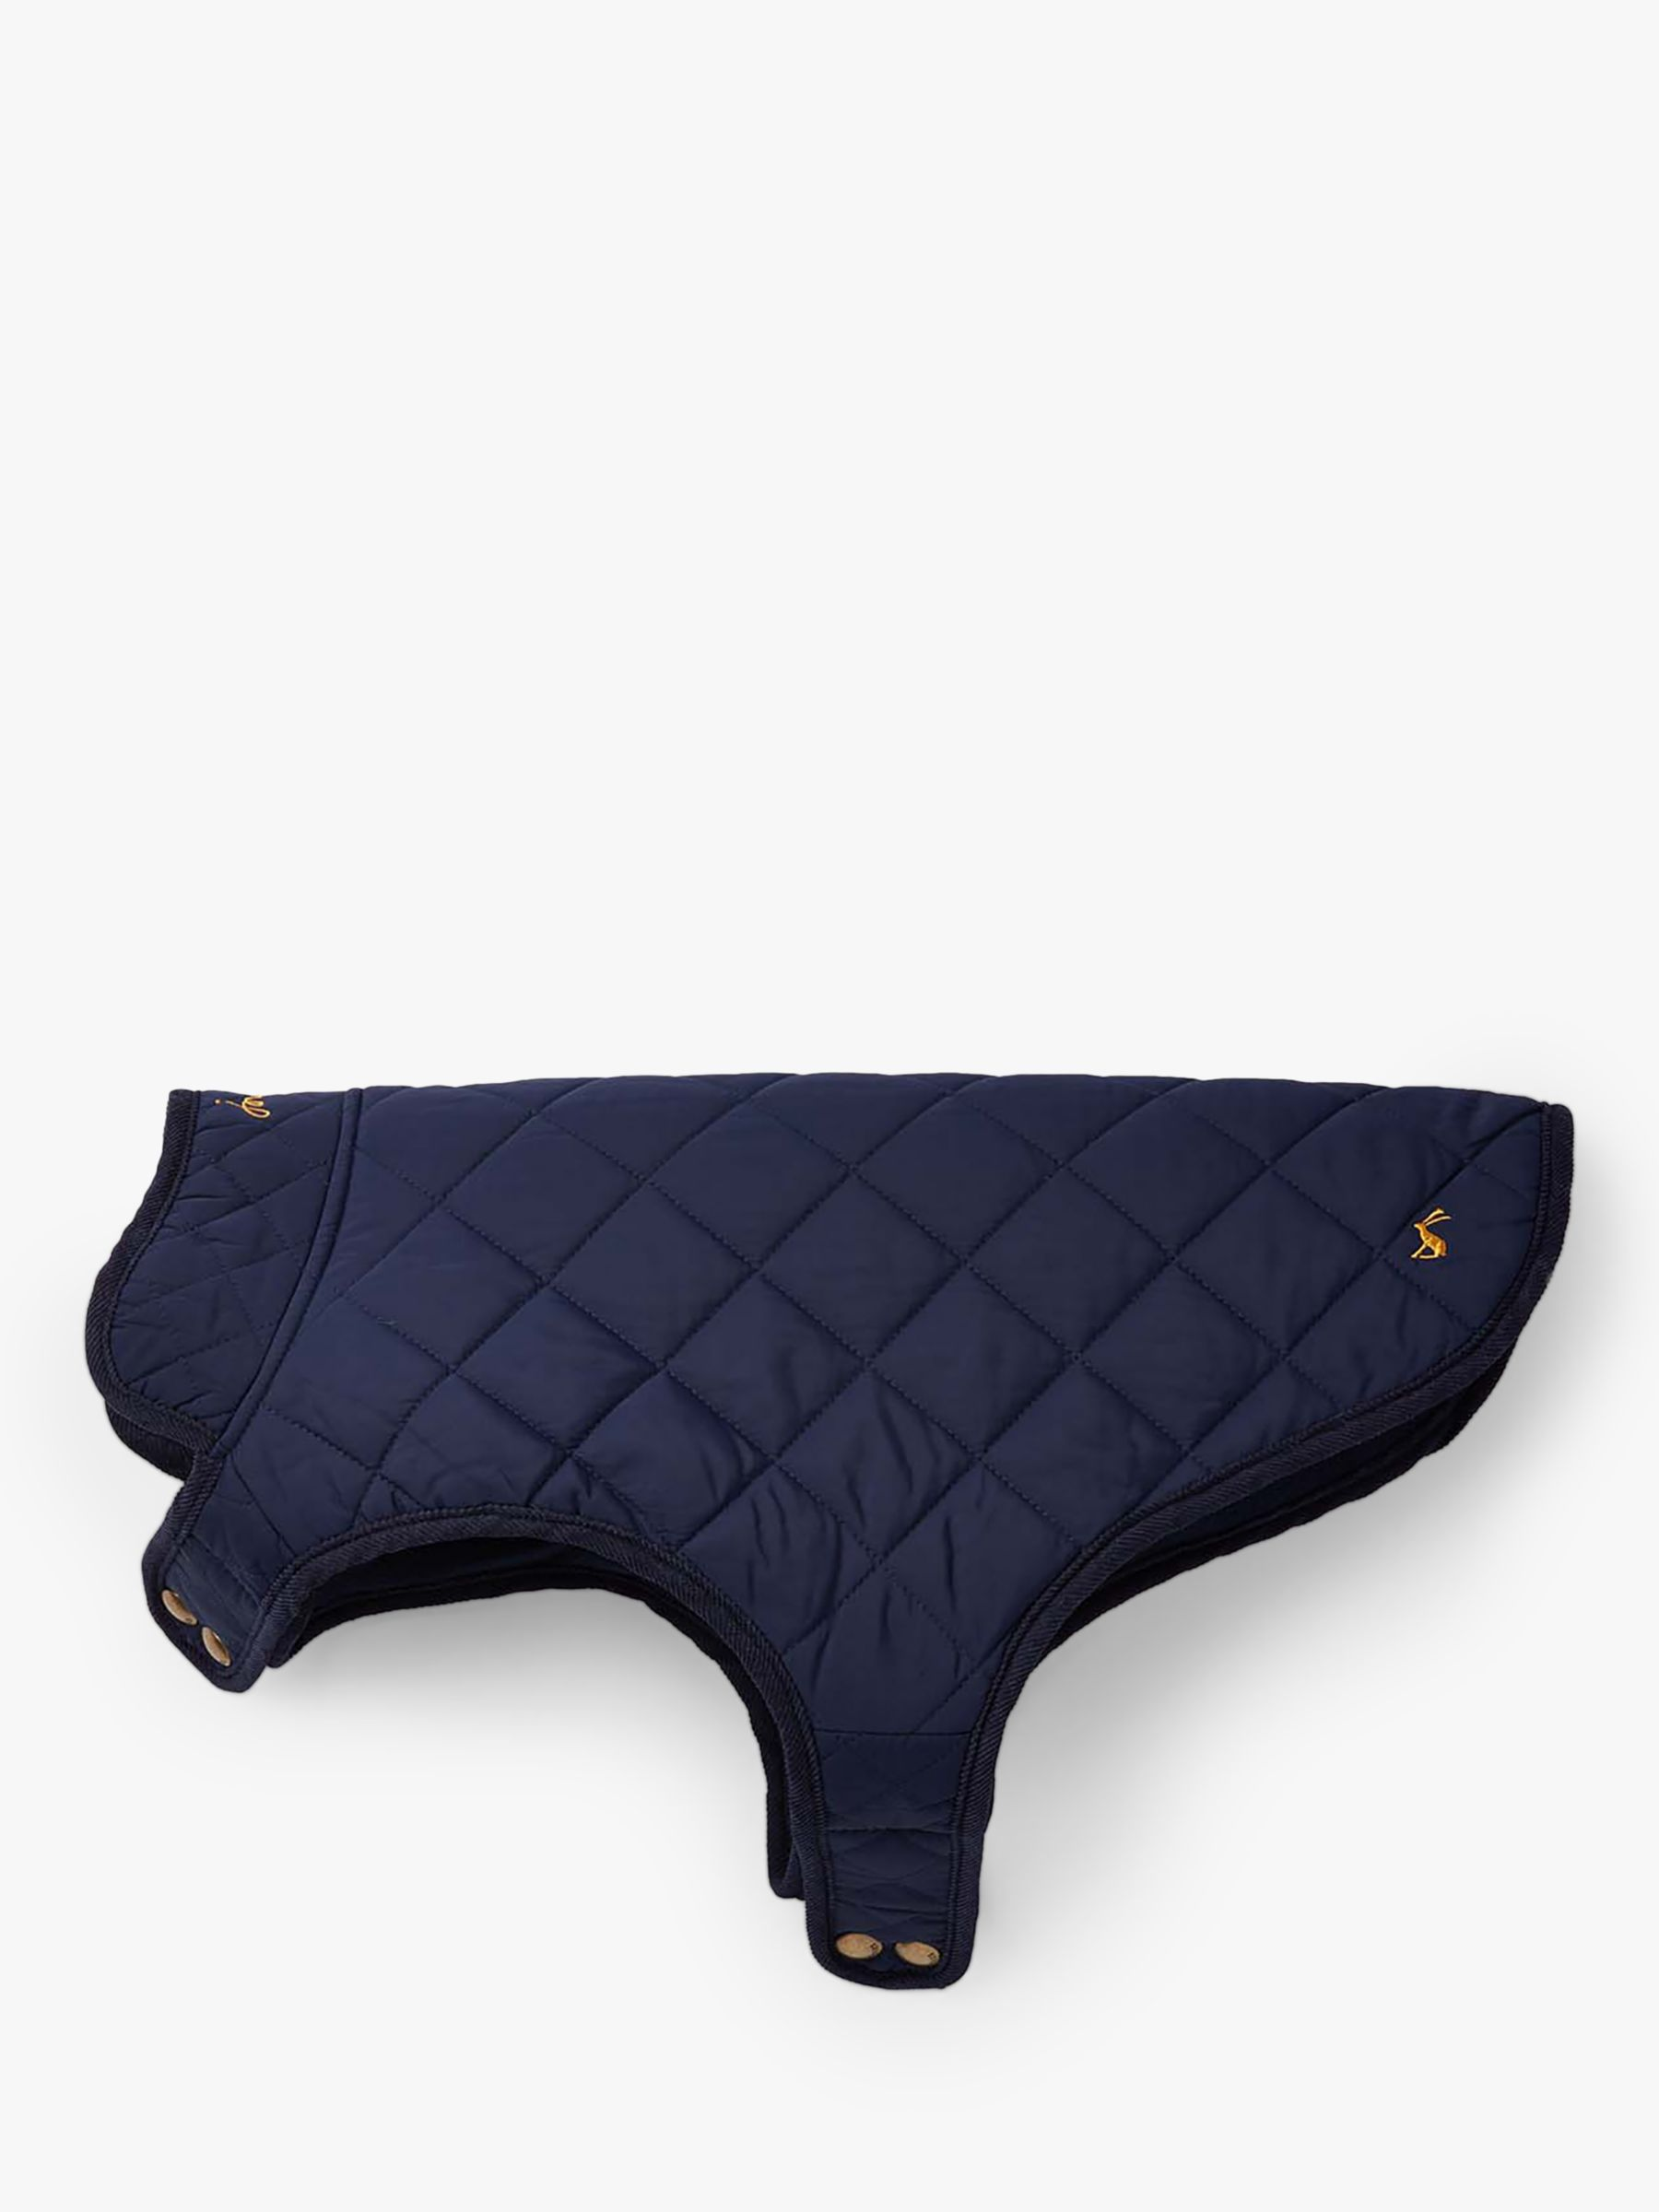 Joules Diamond Quilted Navy Dog Coat